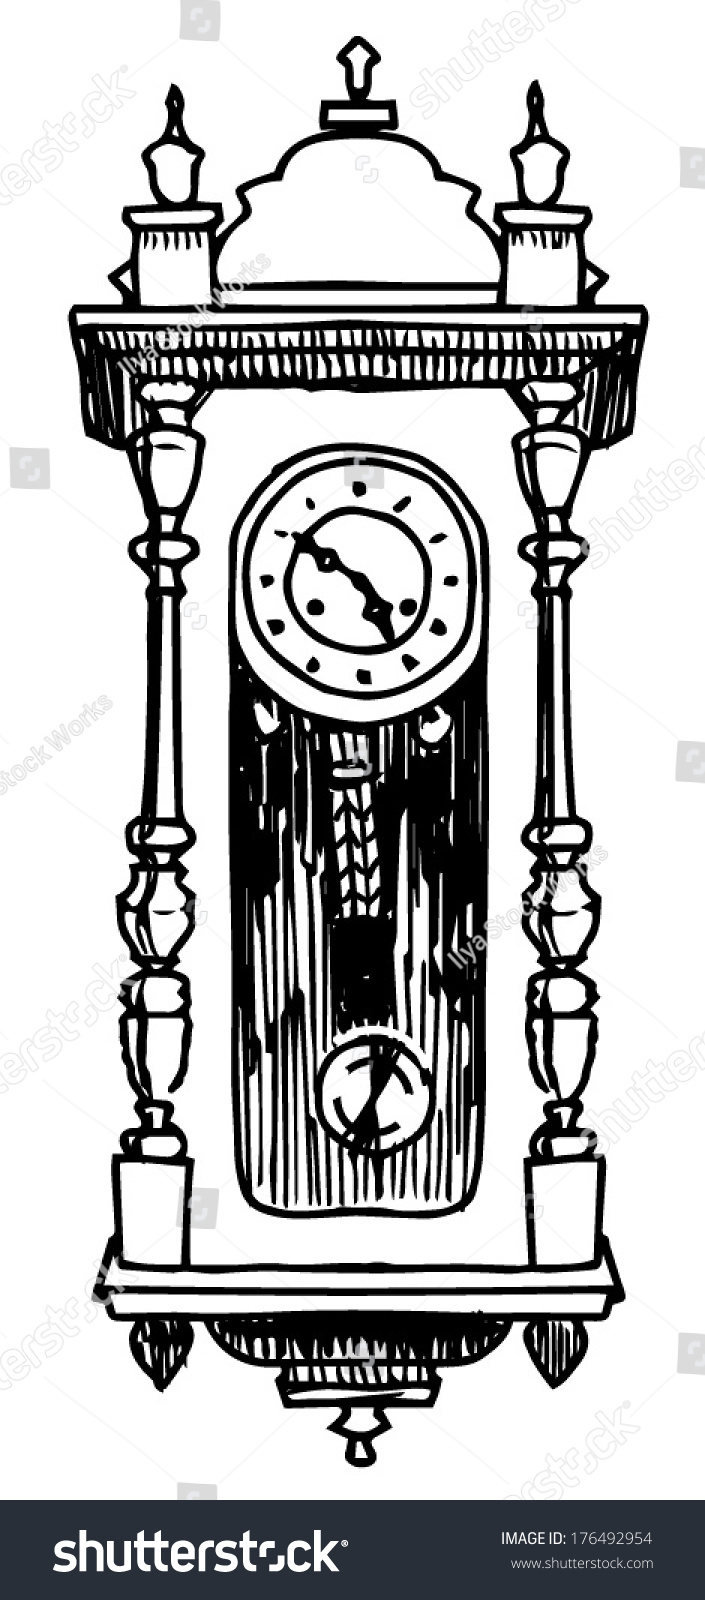 Retro Wall Clock Drawing On Whine Background Stock Vector ...